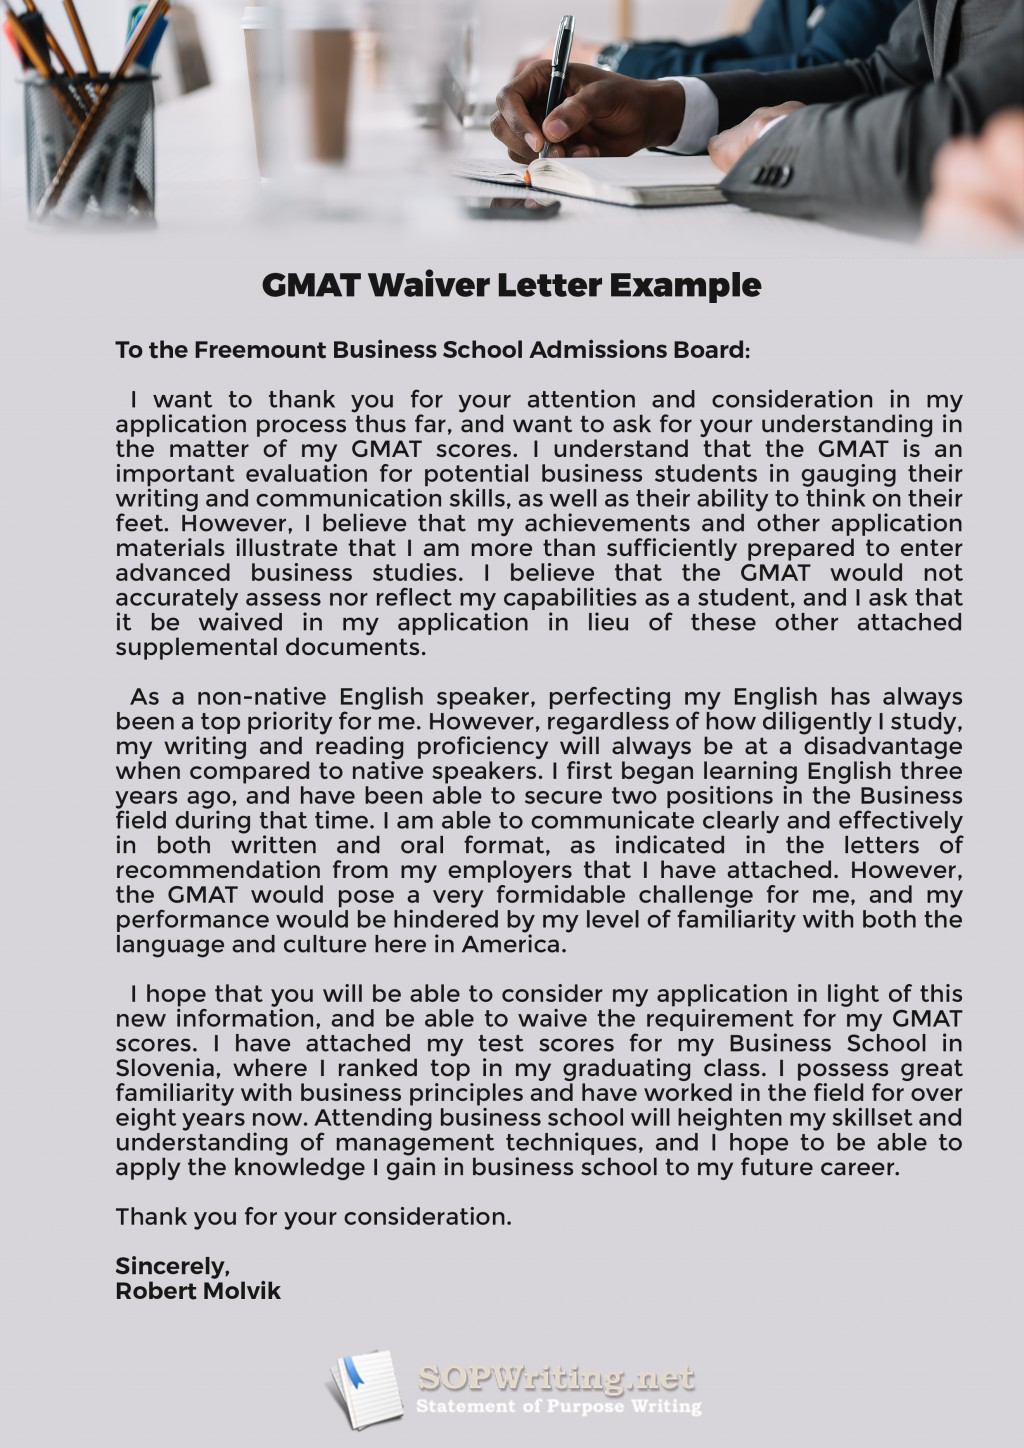 013 Essay Example Gmat Examples Waiver Top Analysis Argument Awa Good Large